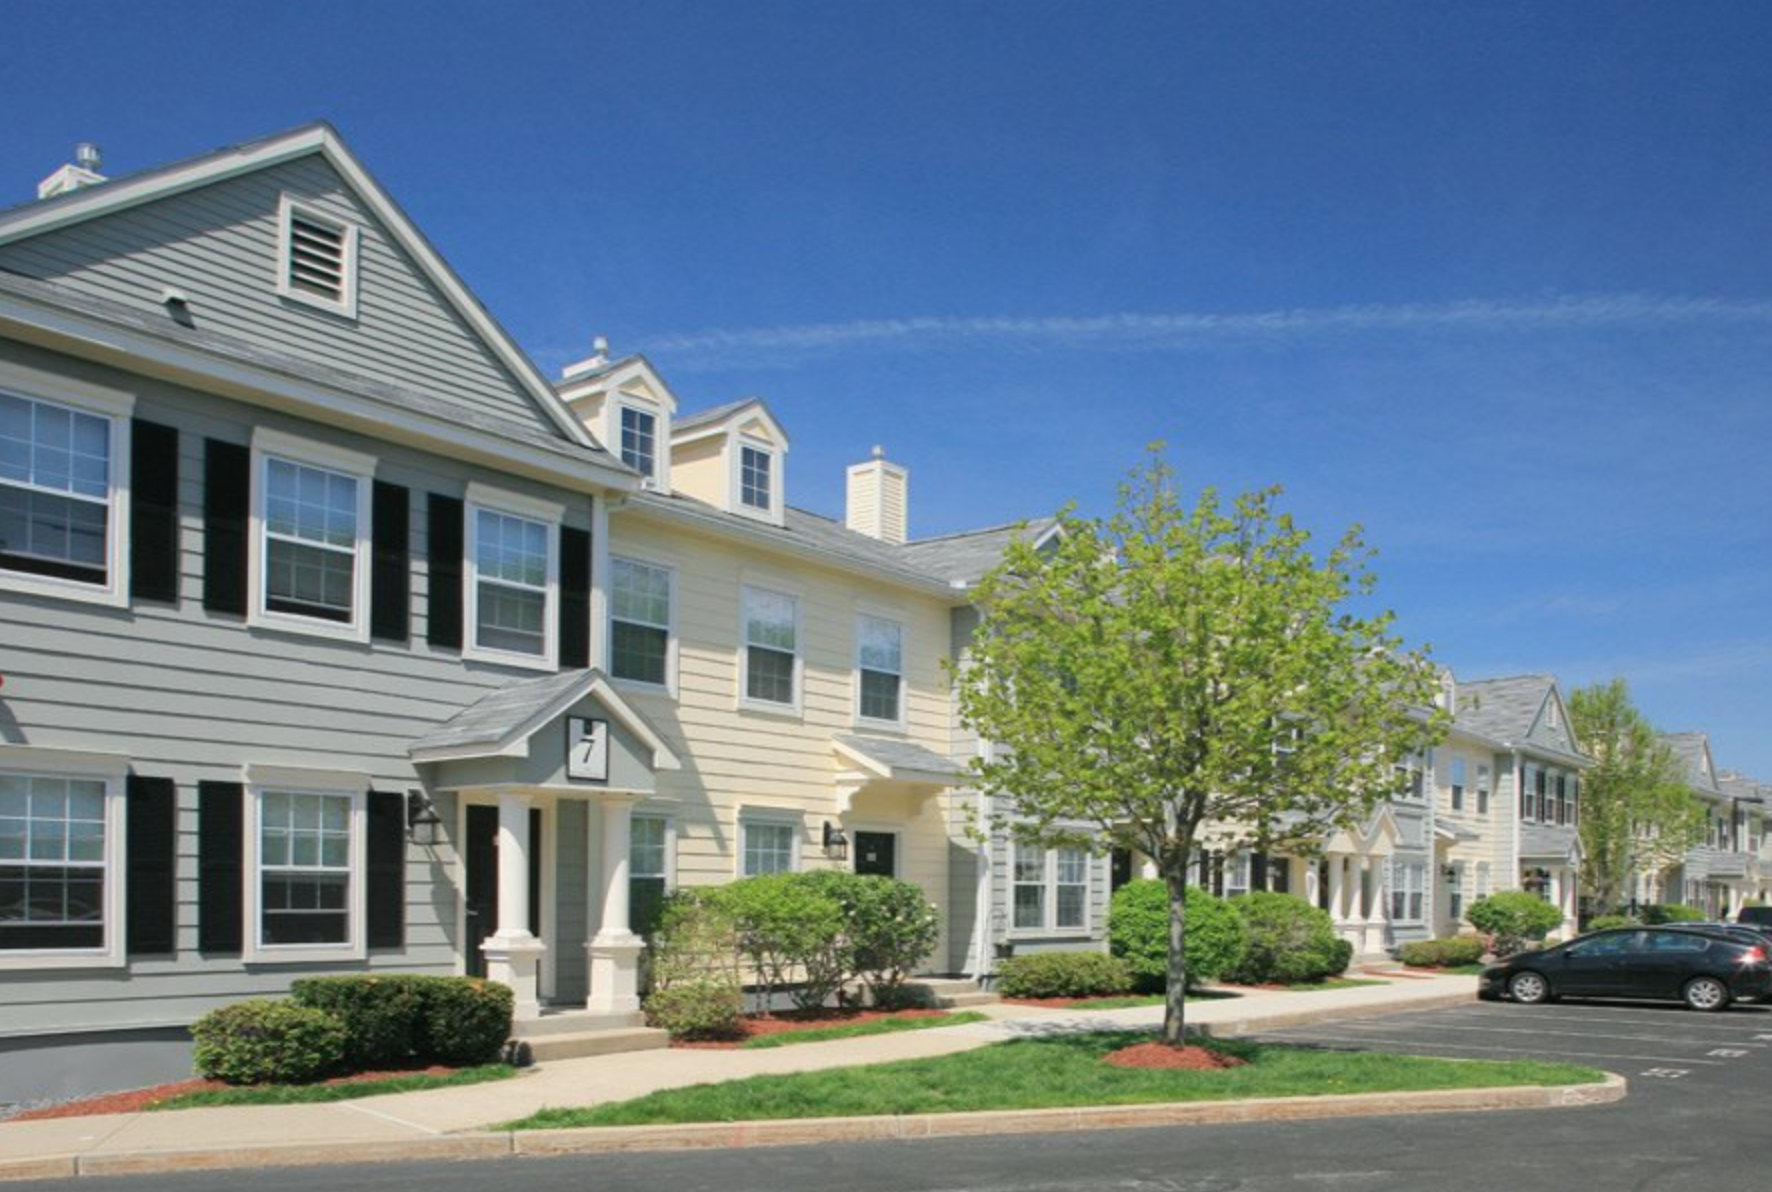 14 - Townhome Elevation